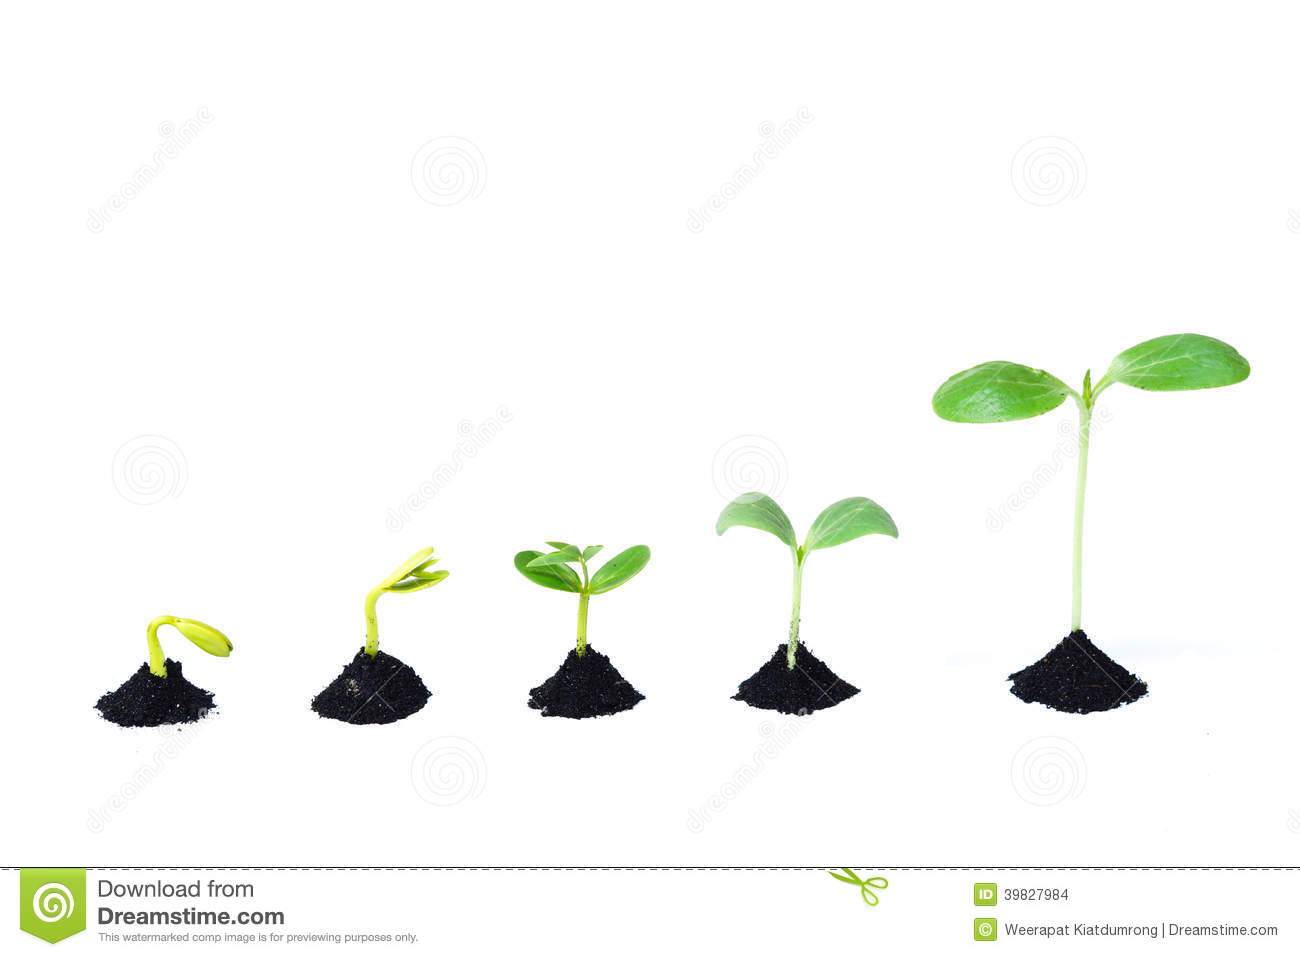 Stock Images Seed Germination Sequence Soil Evolution Concept Image39827984 on Plant Life Cycle Stages